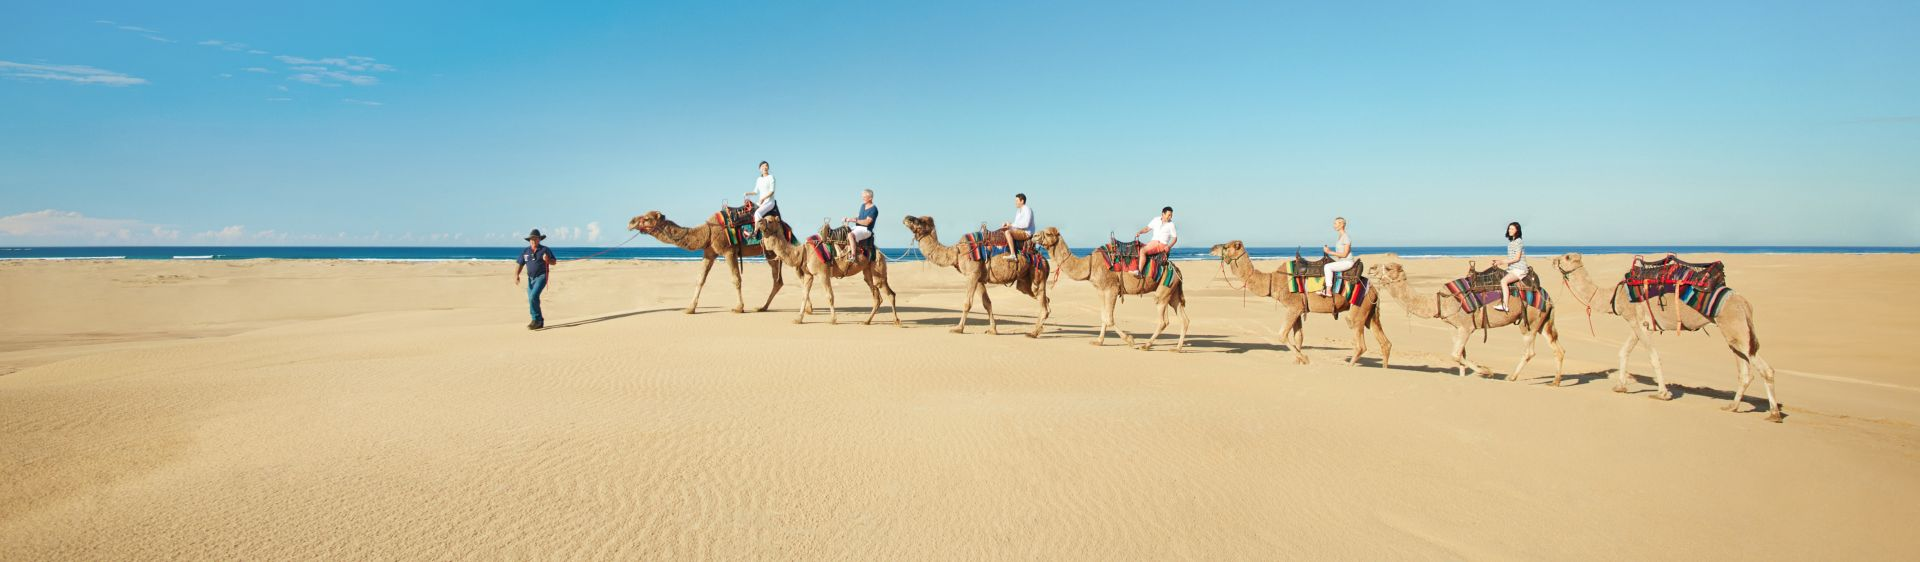 Camel rides on the Stockton Bight sand dunes, Port Stephens, Australia